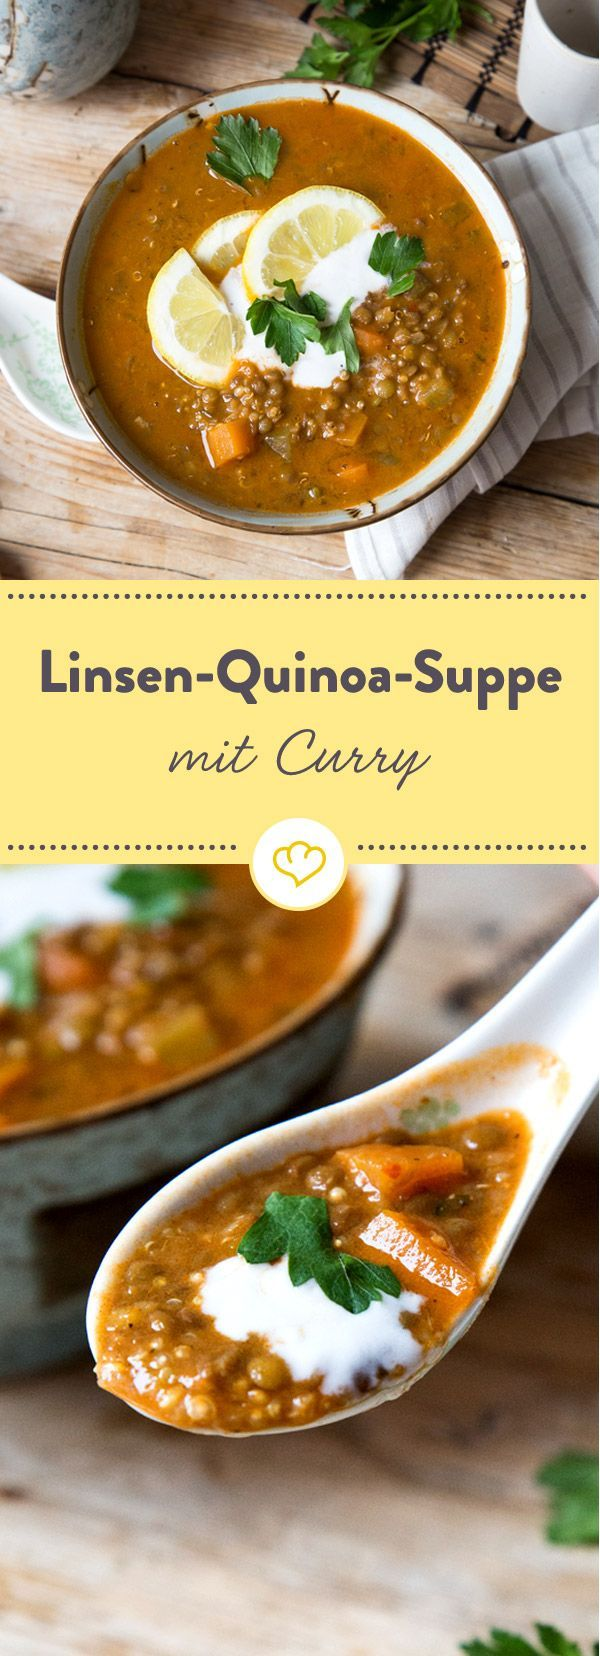 Vegane Linsen-Quinoa-Suppe mit Curry  #curry #linsen #quinoa #suppe #vegane